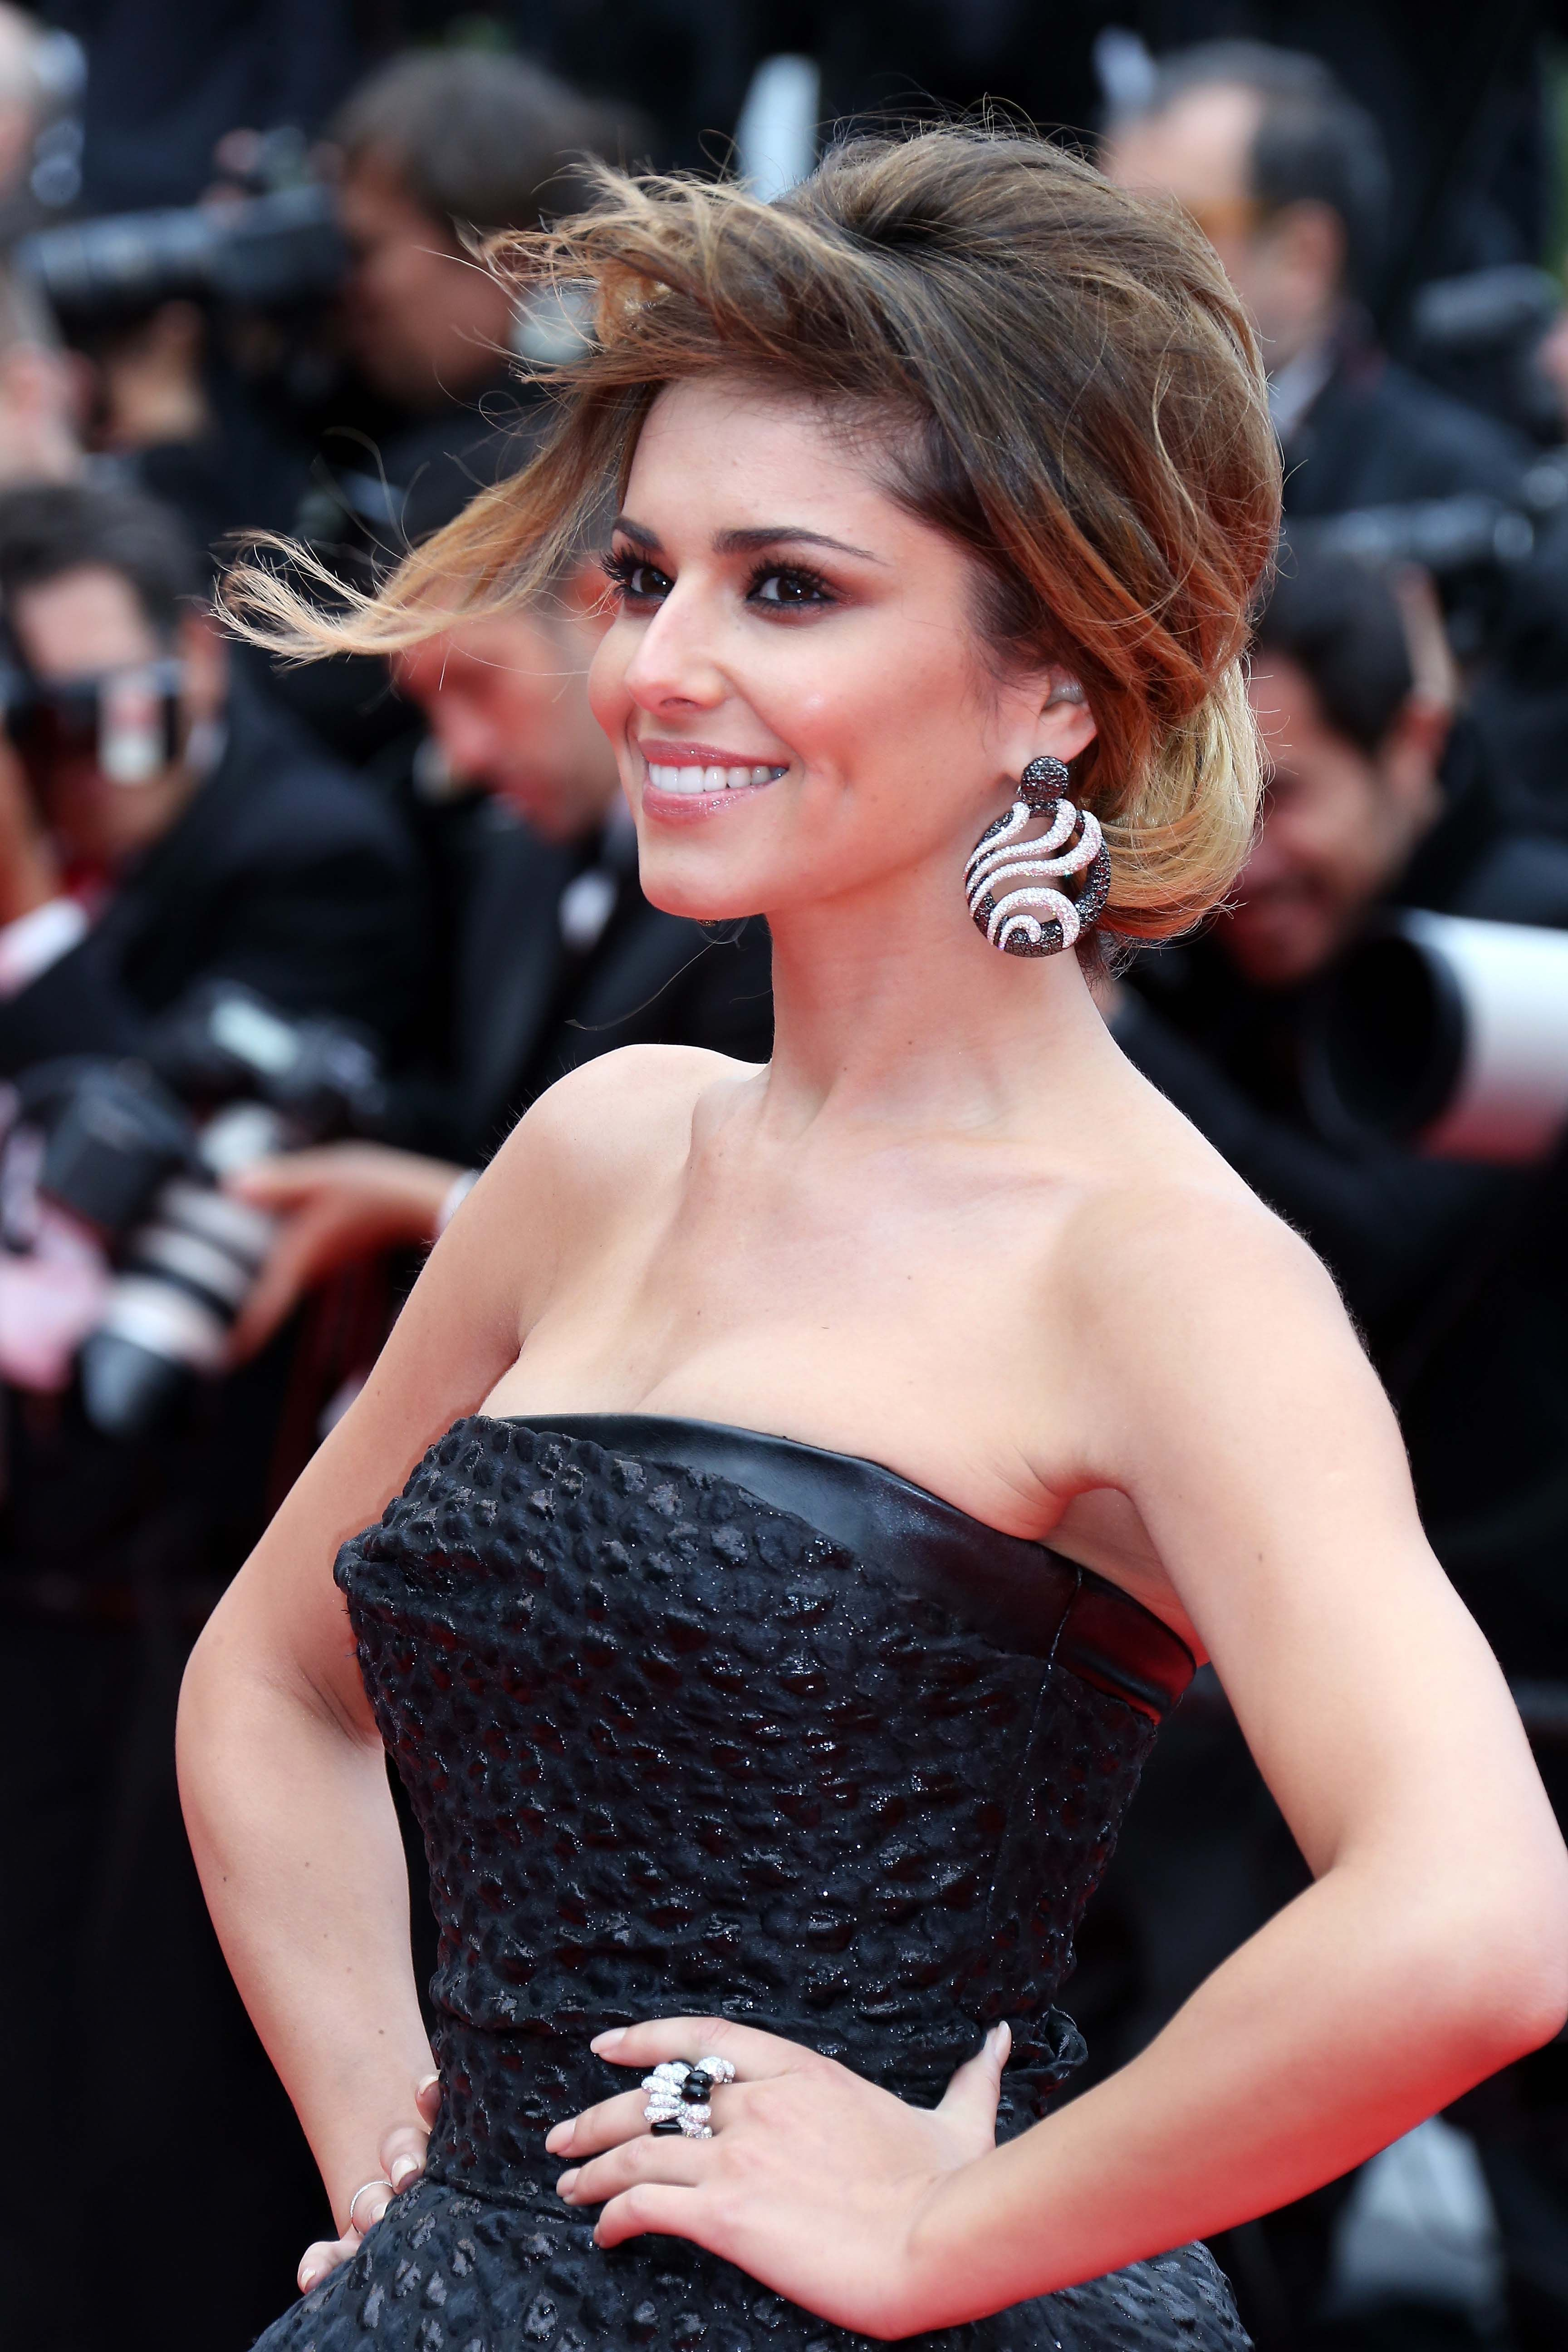 Cannes Film Festival 2014: glamorous red carpet jewels are rolled ...